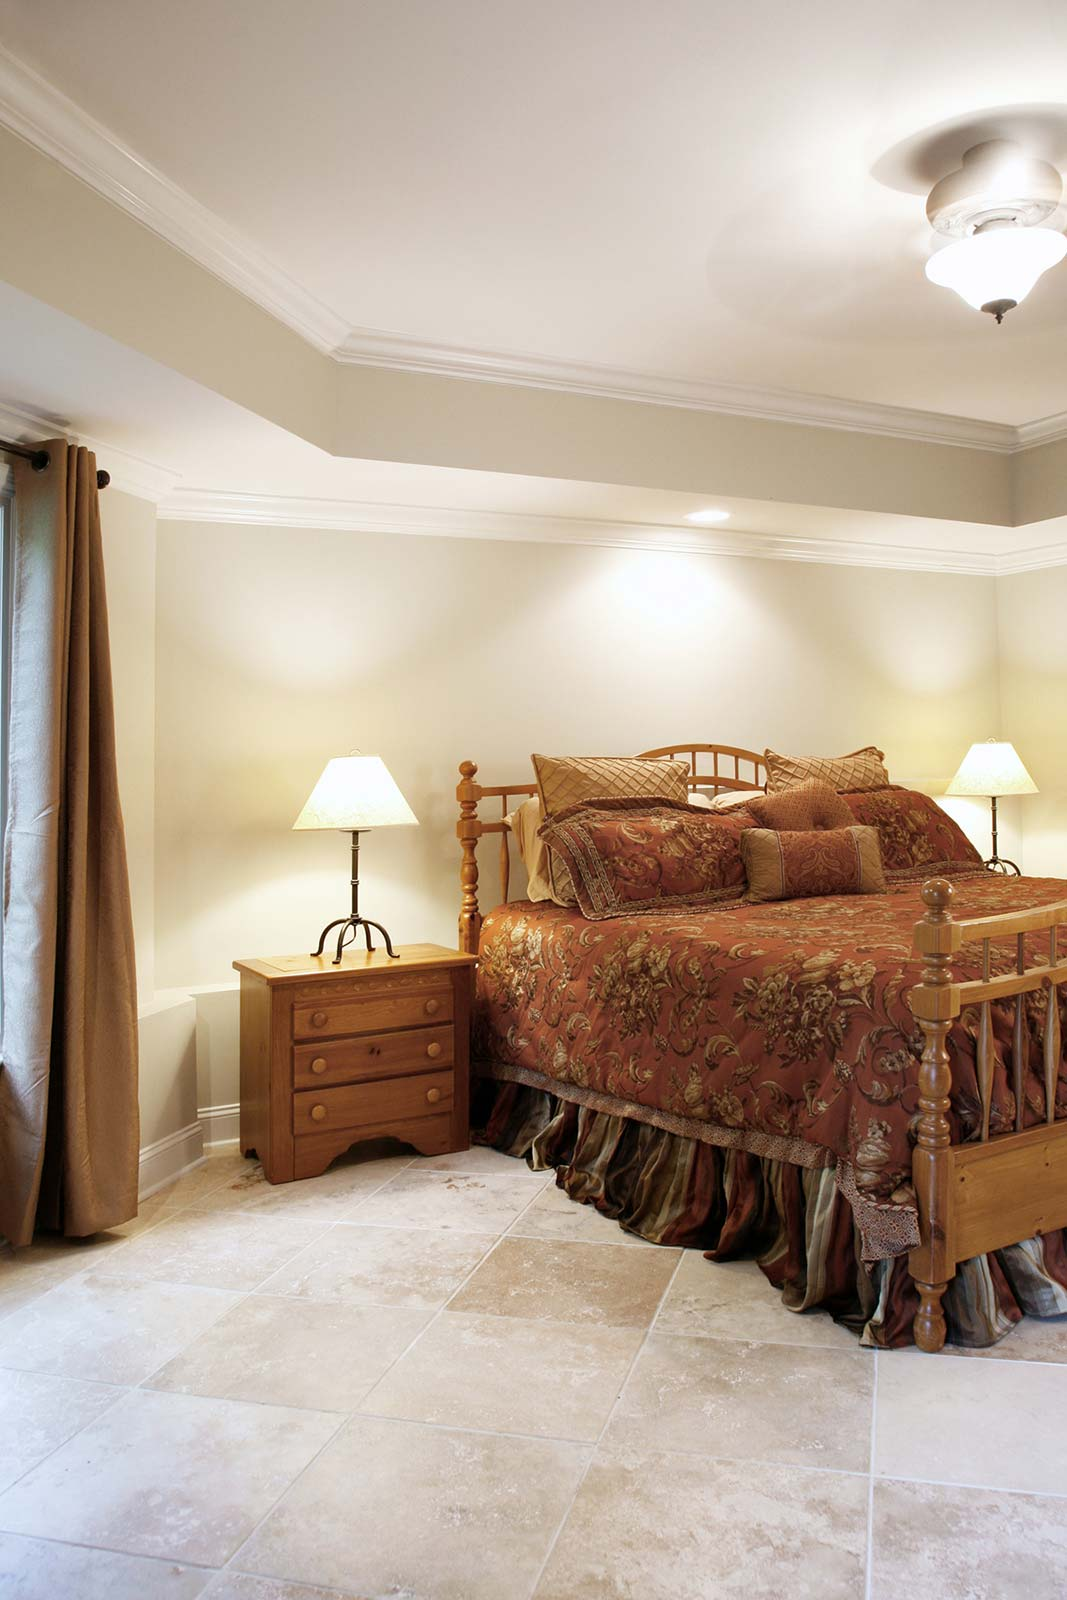 Remodeled bedroom including a tray ceiling to add height